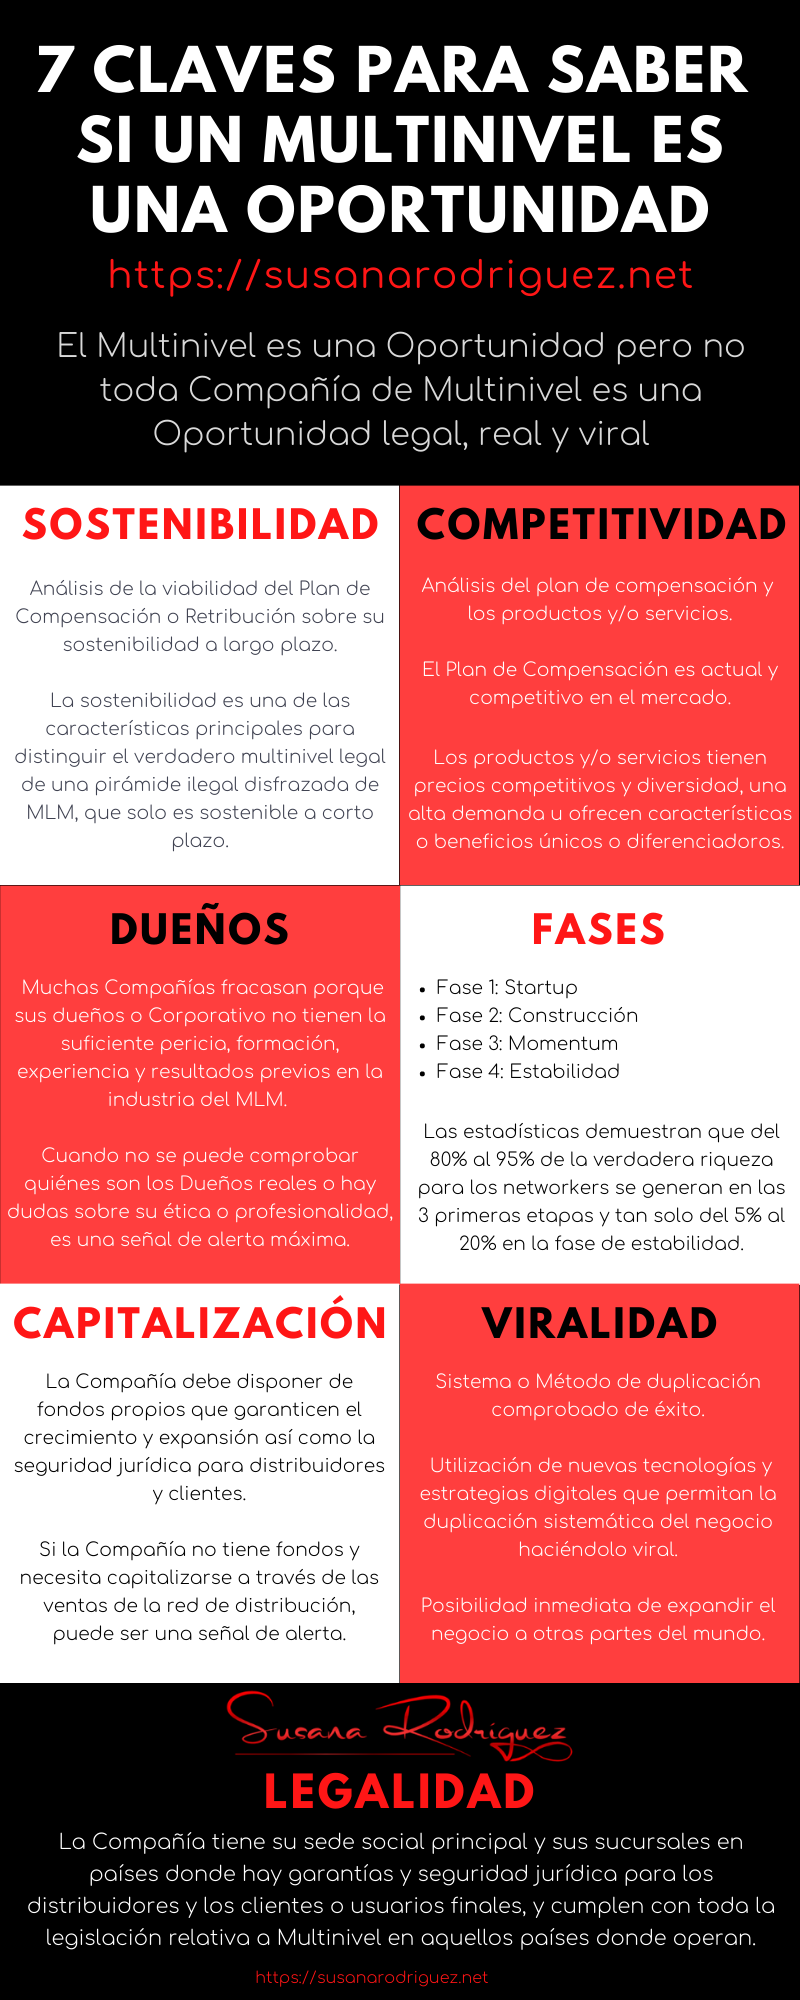 como saber si un multinivel es oportunidad o estafa